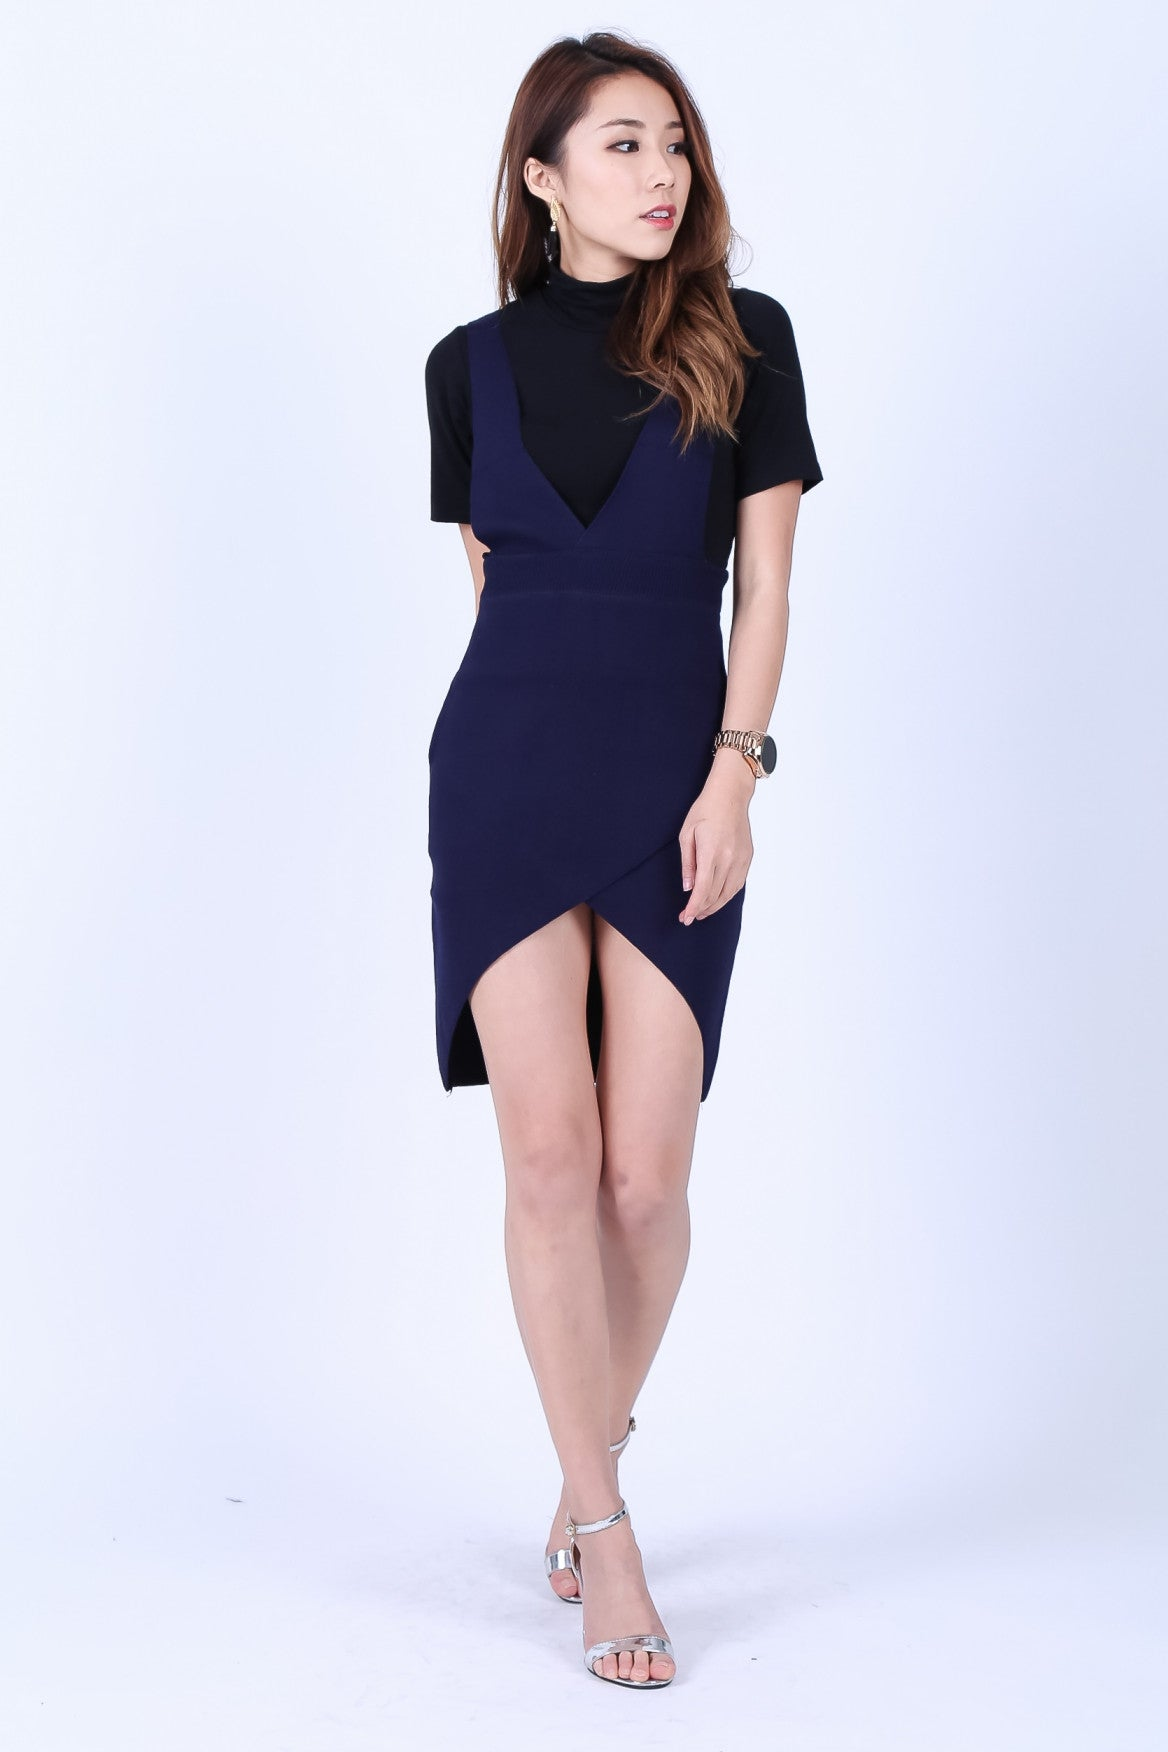 OVERLAP DUNGAREE DRESS IN NAVY - TOPAZETTE